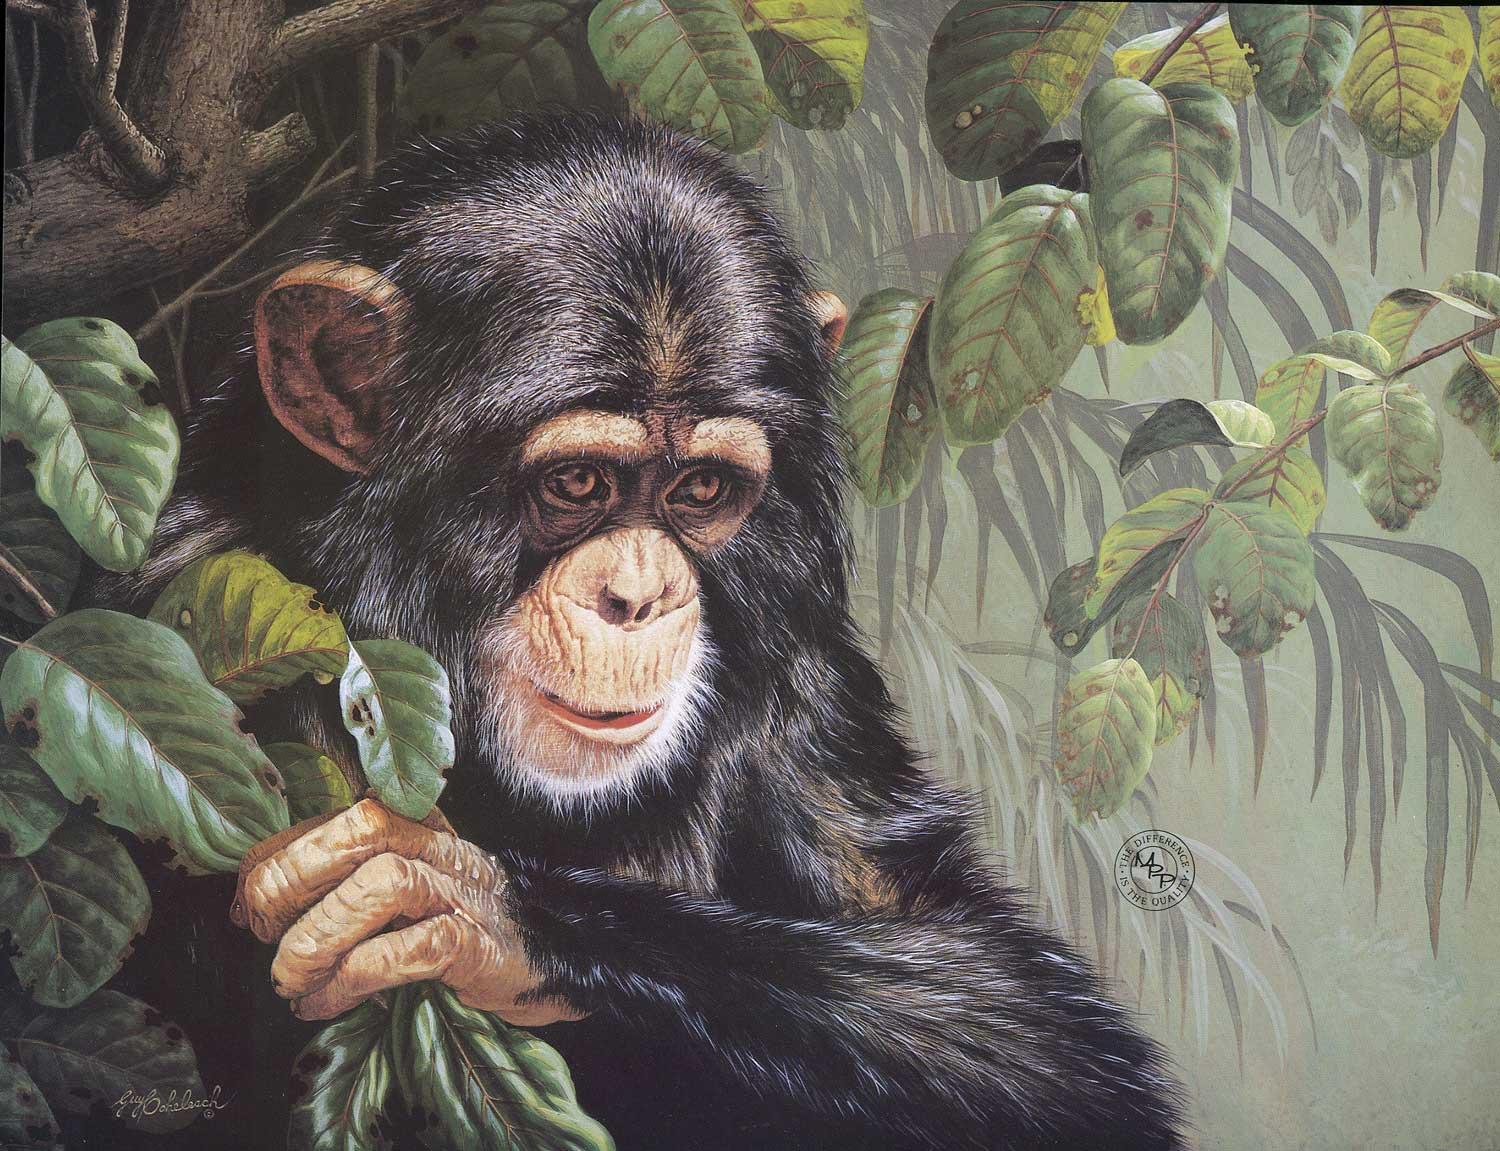 """""""Young Joe""""  -  18"""" x 22"""" """"Young Joe"""" - Critters  Small Game Paintings  Small Animals in Art"""